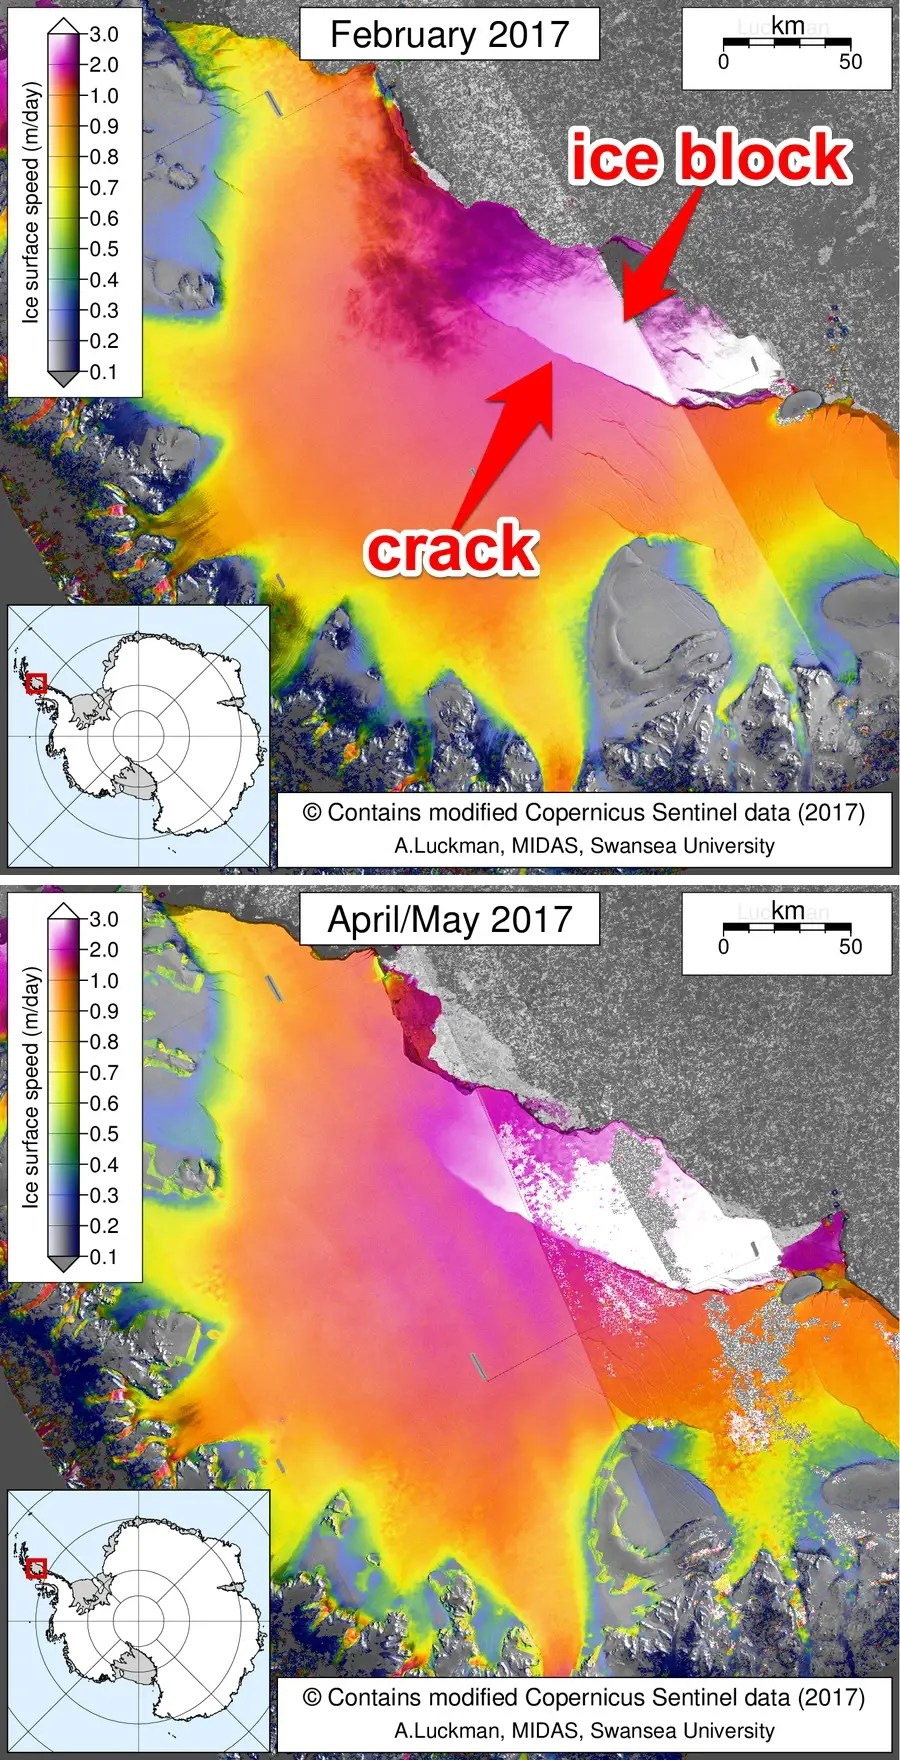 antarctica larsen c ice shelf crack midas sar rift map february april may 2017 luckman midas swansea labeled